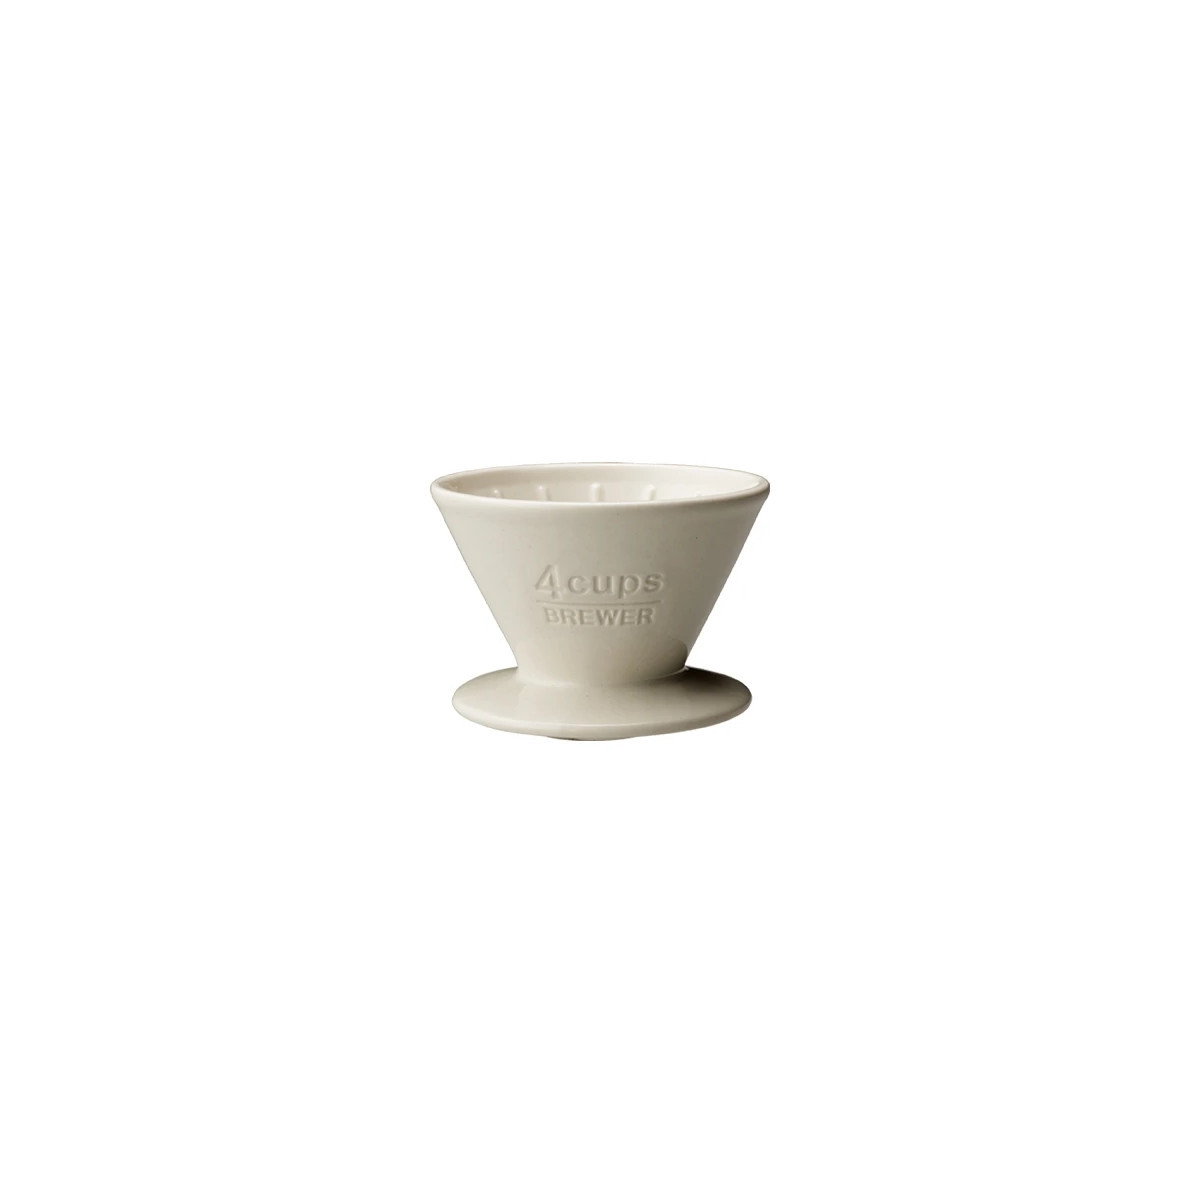 Porcelanowy dripper do kawy brewer 4cups white Kinto